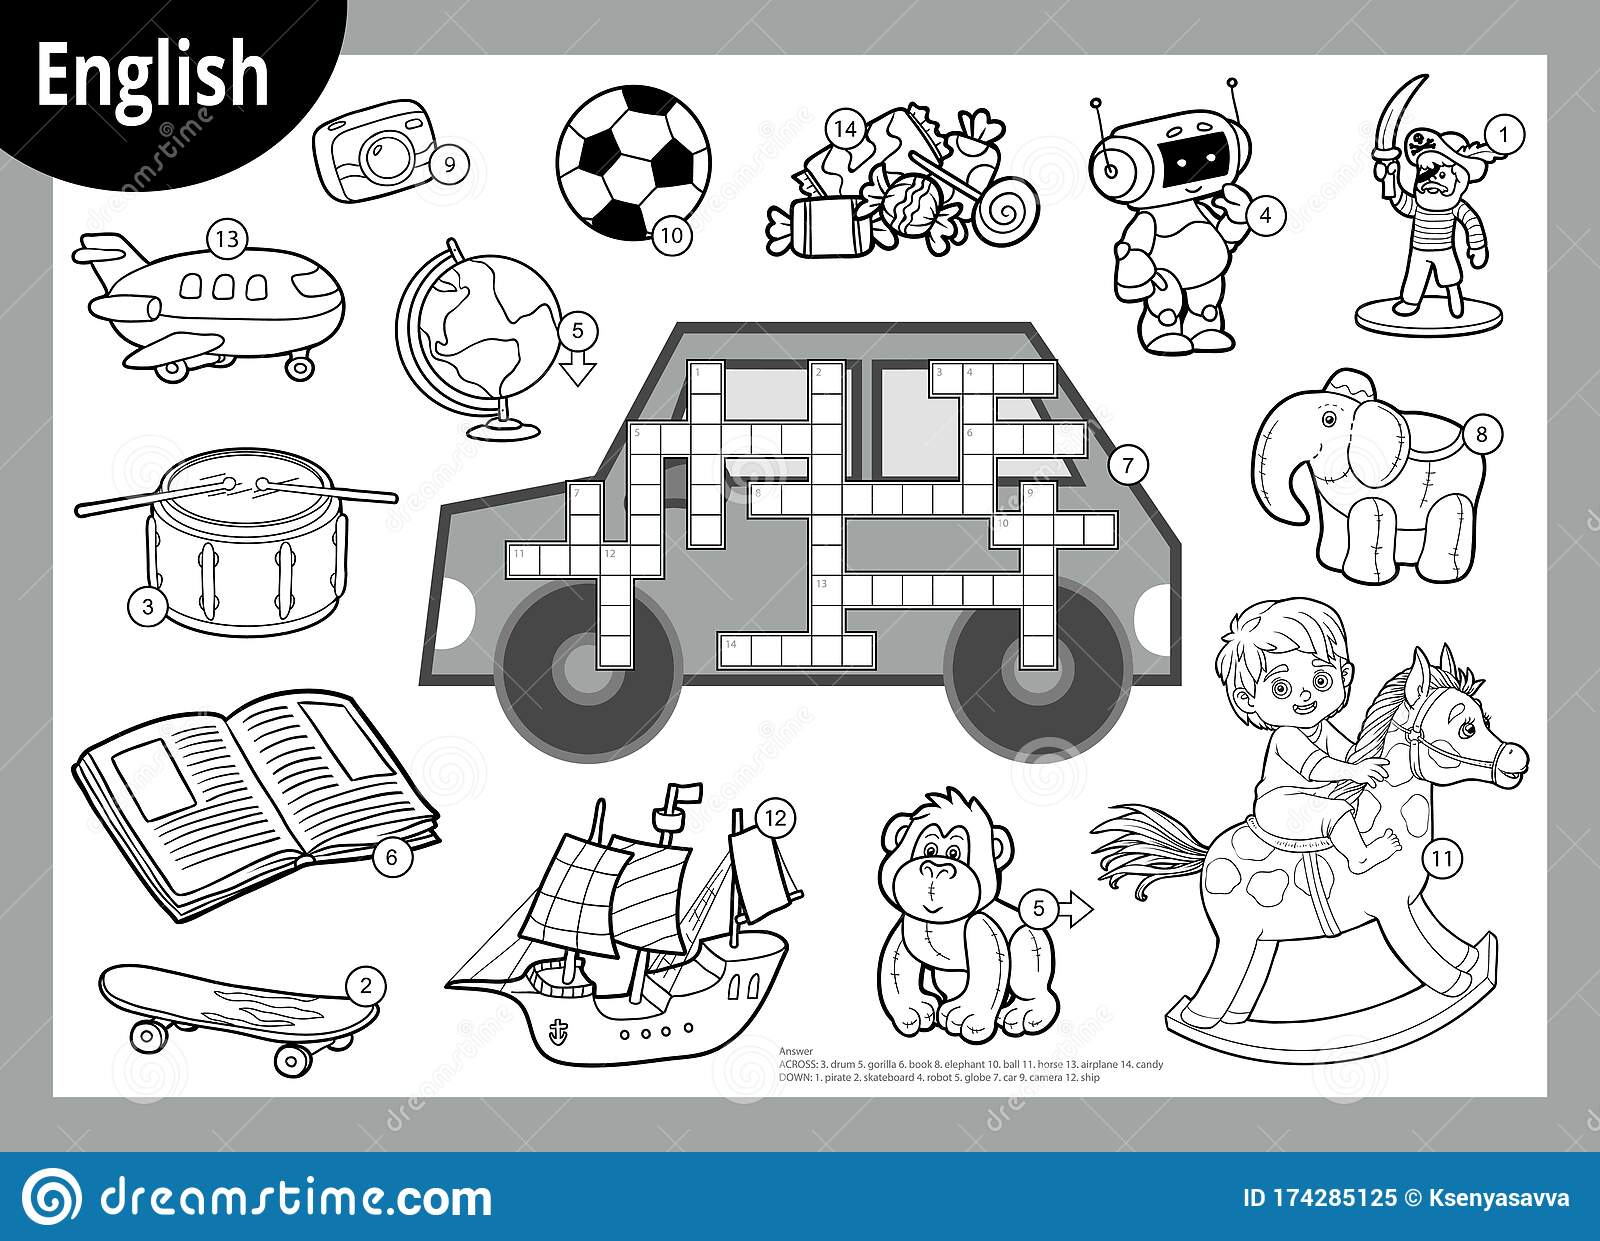 Vector Black And White Crossword In English Cartoon Set Of Toys And Items For Boys Stock Vector Illustration Of Alphabet Game 174285125